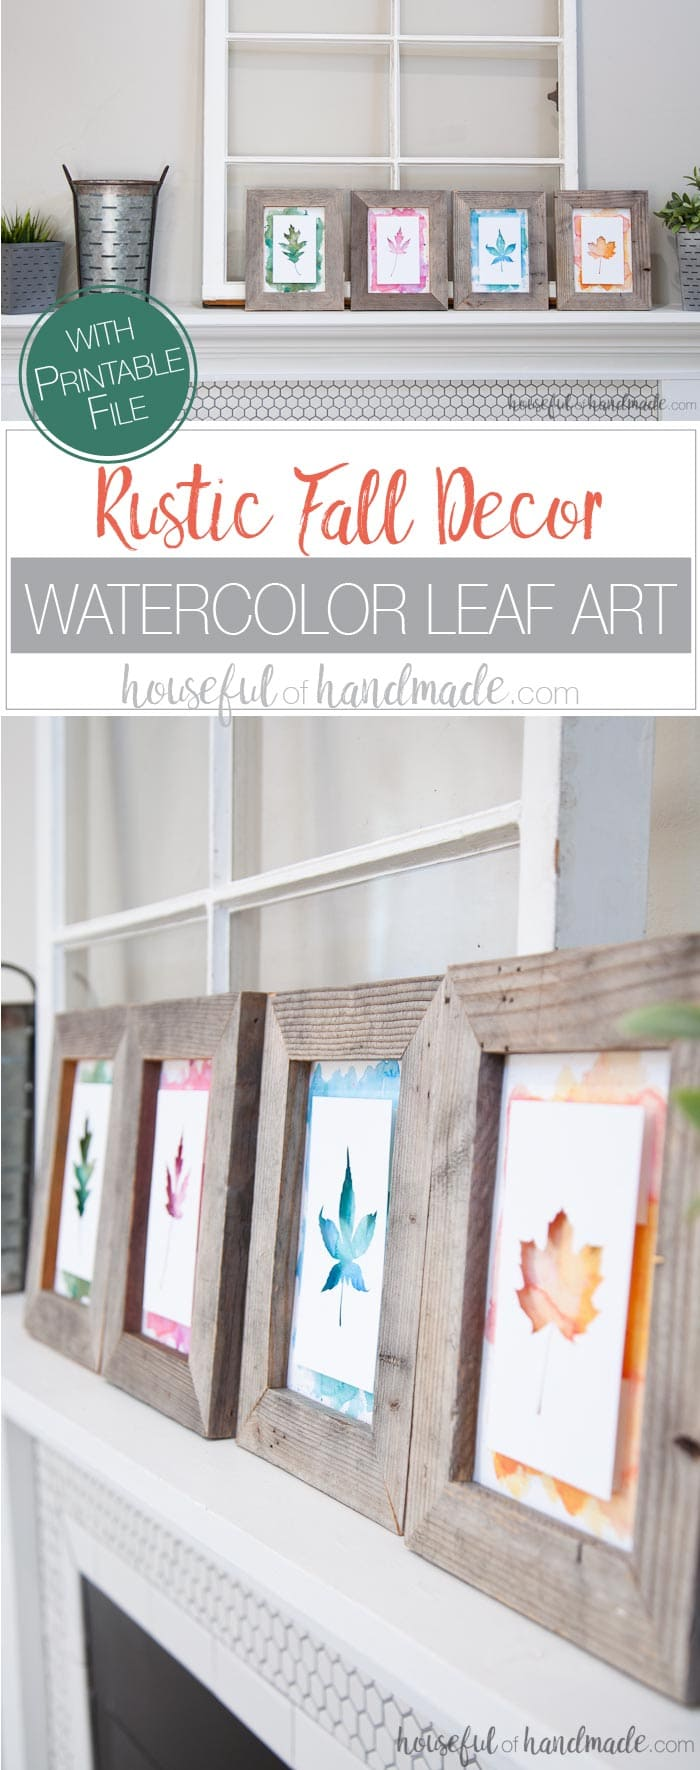 Create beautiful non-traditional decorations for fall. I love these watercolor leaf prints. It's the perfect easy rustic fall decor. Includes free printable file and Silhouette cut file. Housefulofhandmade.com